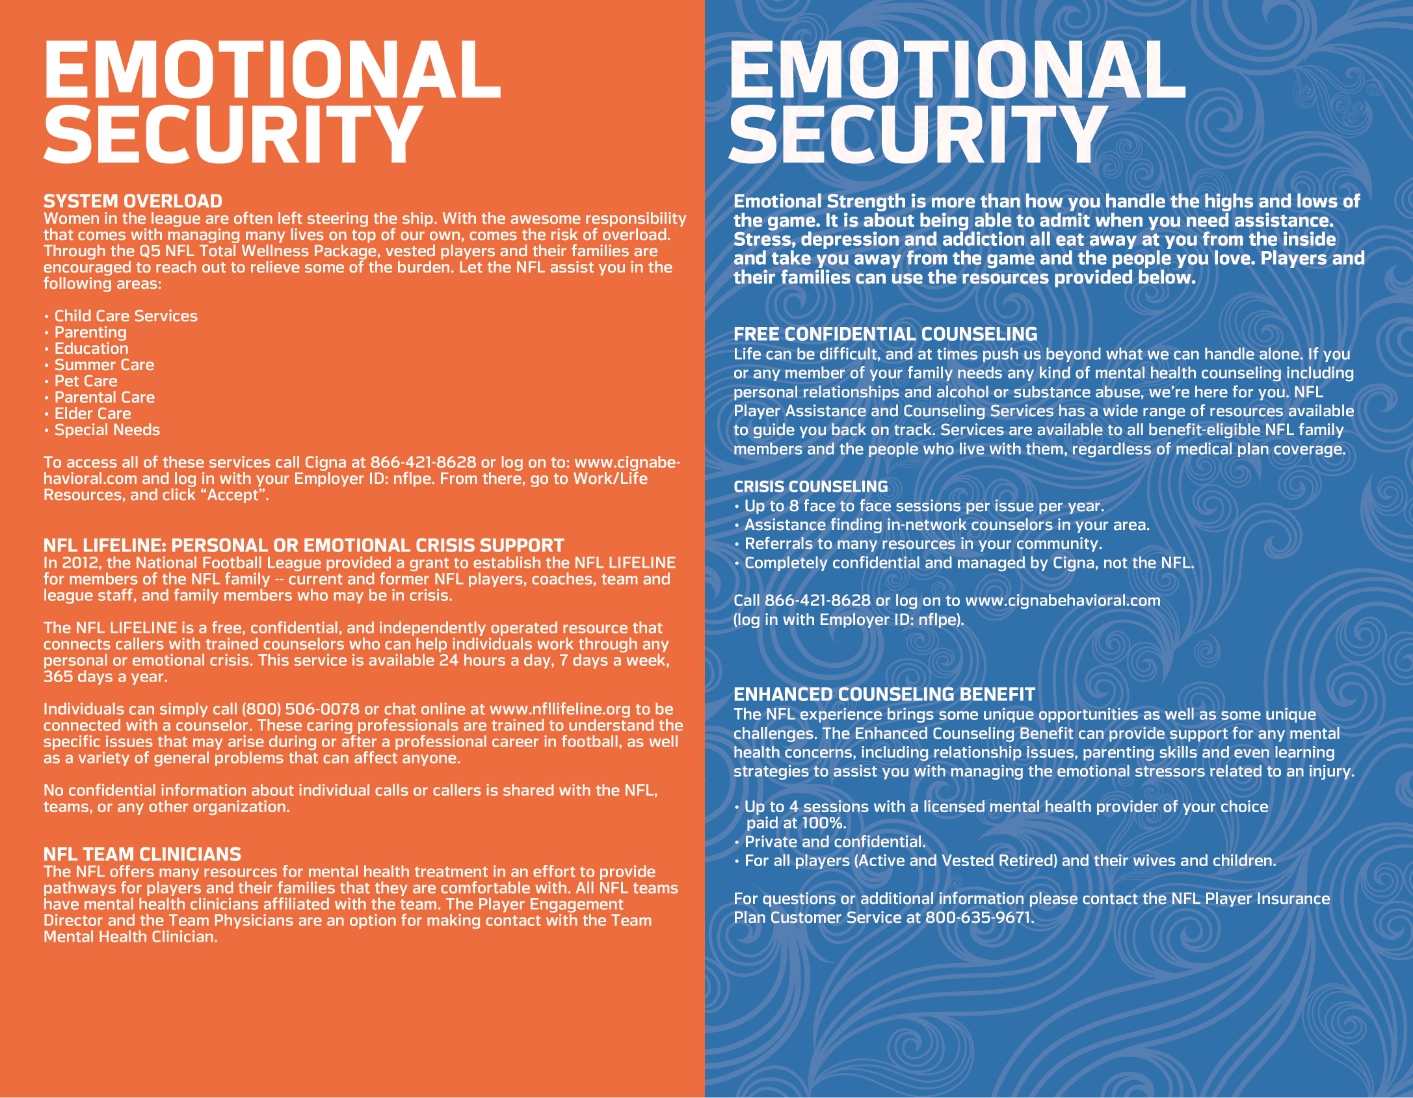 emotional security pages 3 and 4.jpg